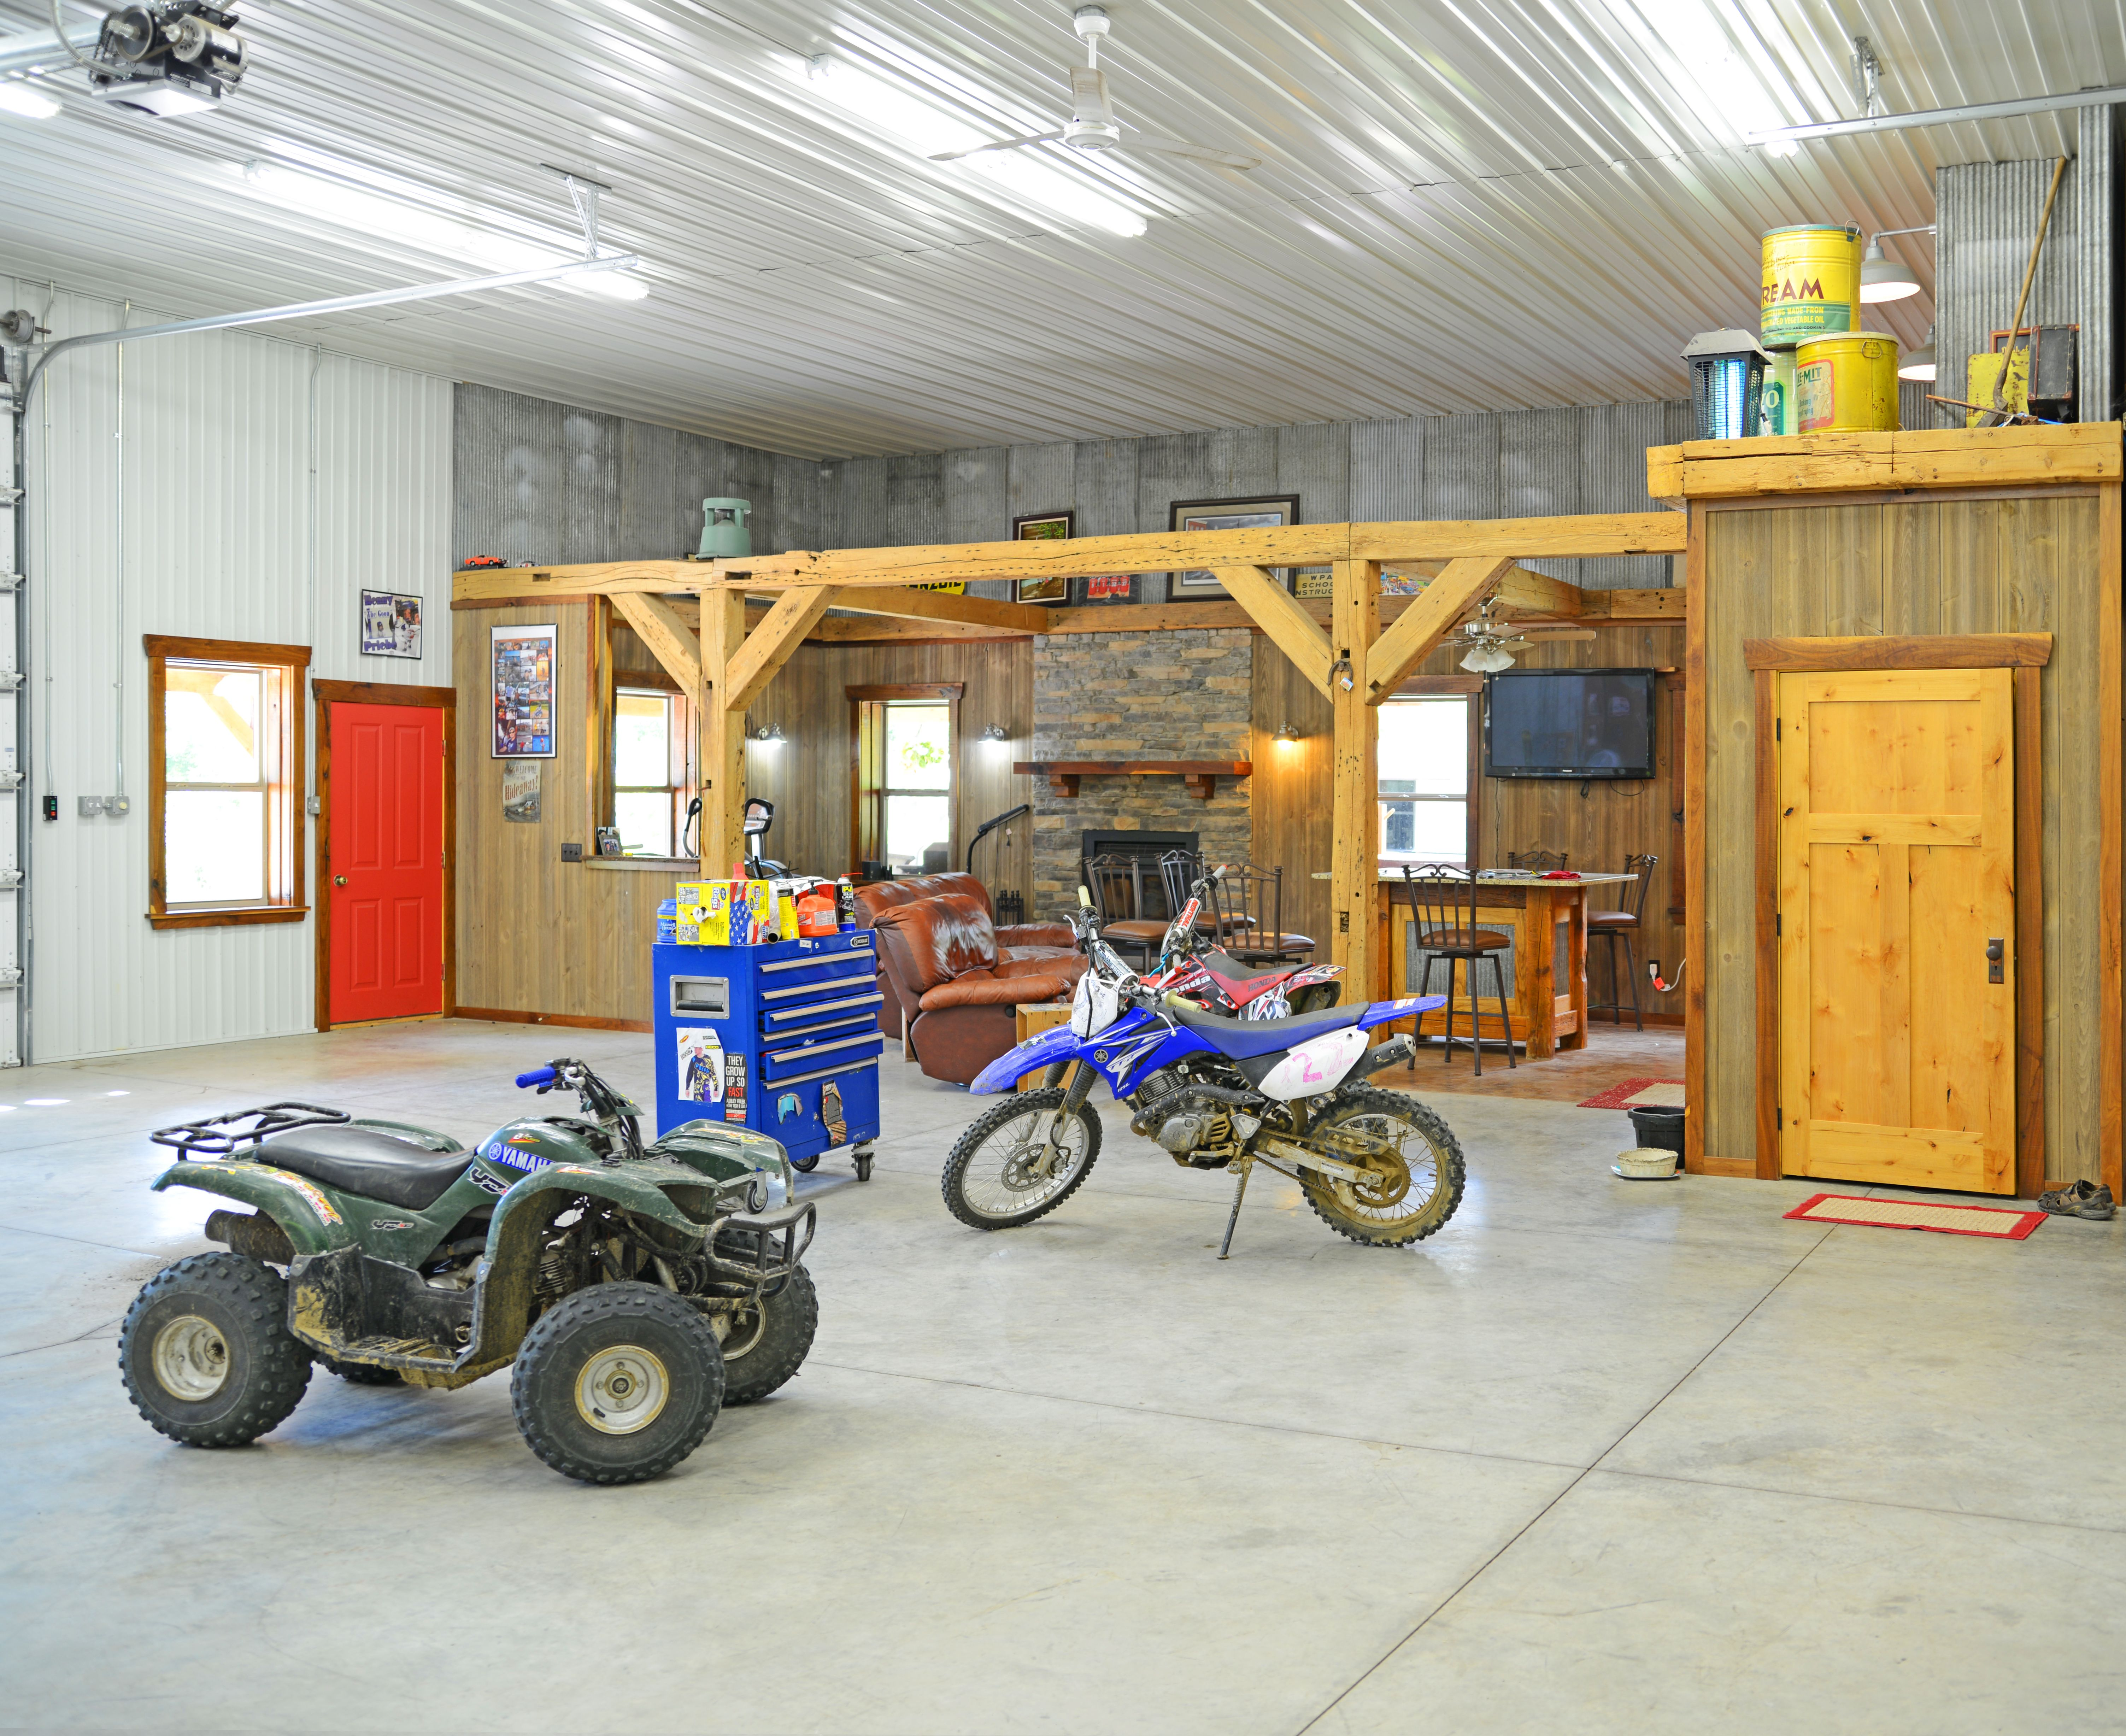 Pole Barn Interior Ideas Pole Barn House Plans Barn Interior